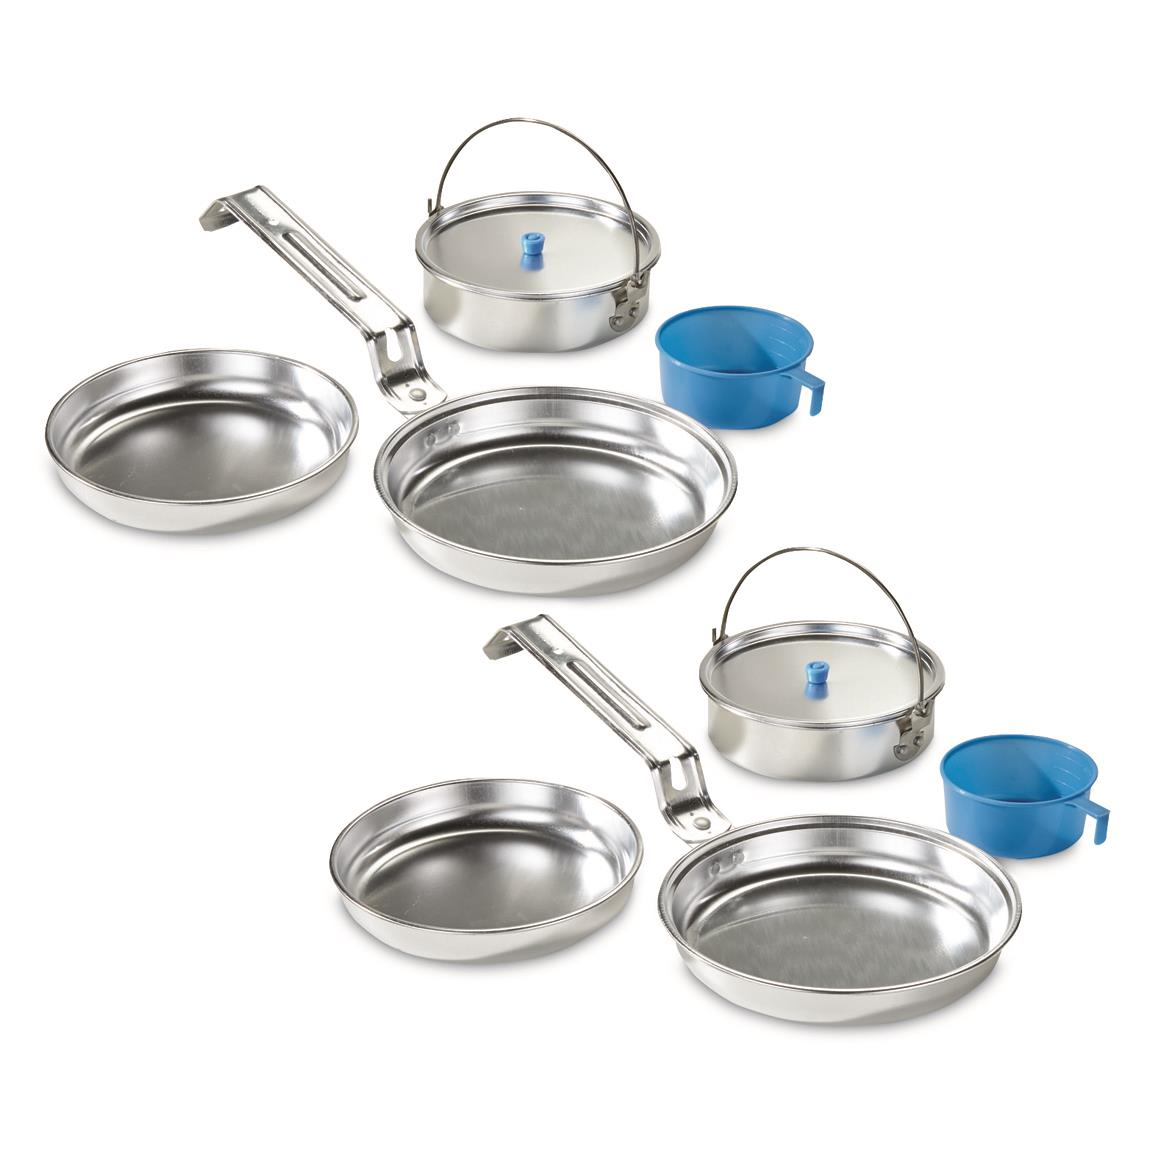 Mil-Tec 2-person Mess Kit Cook Set